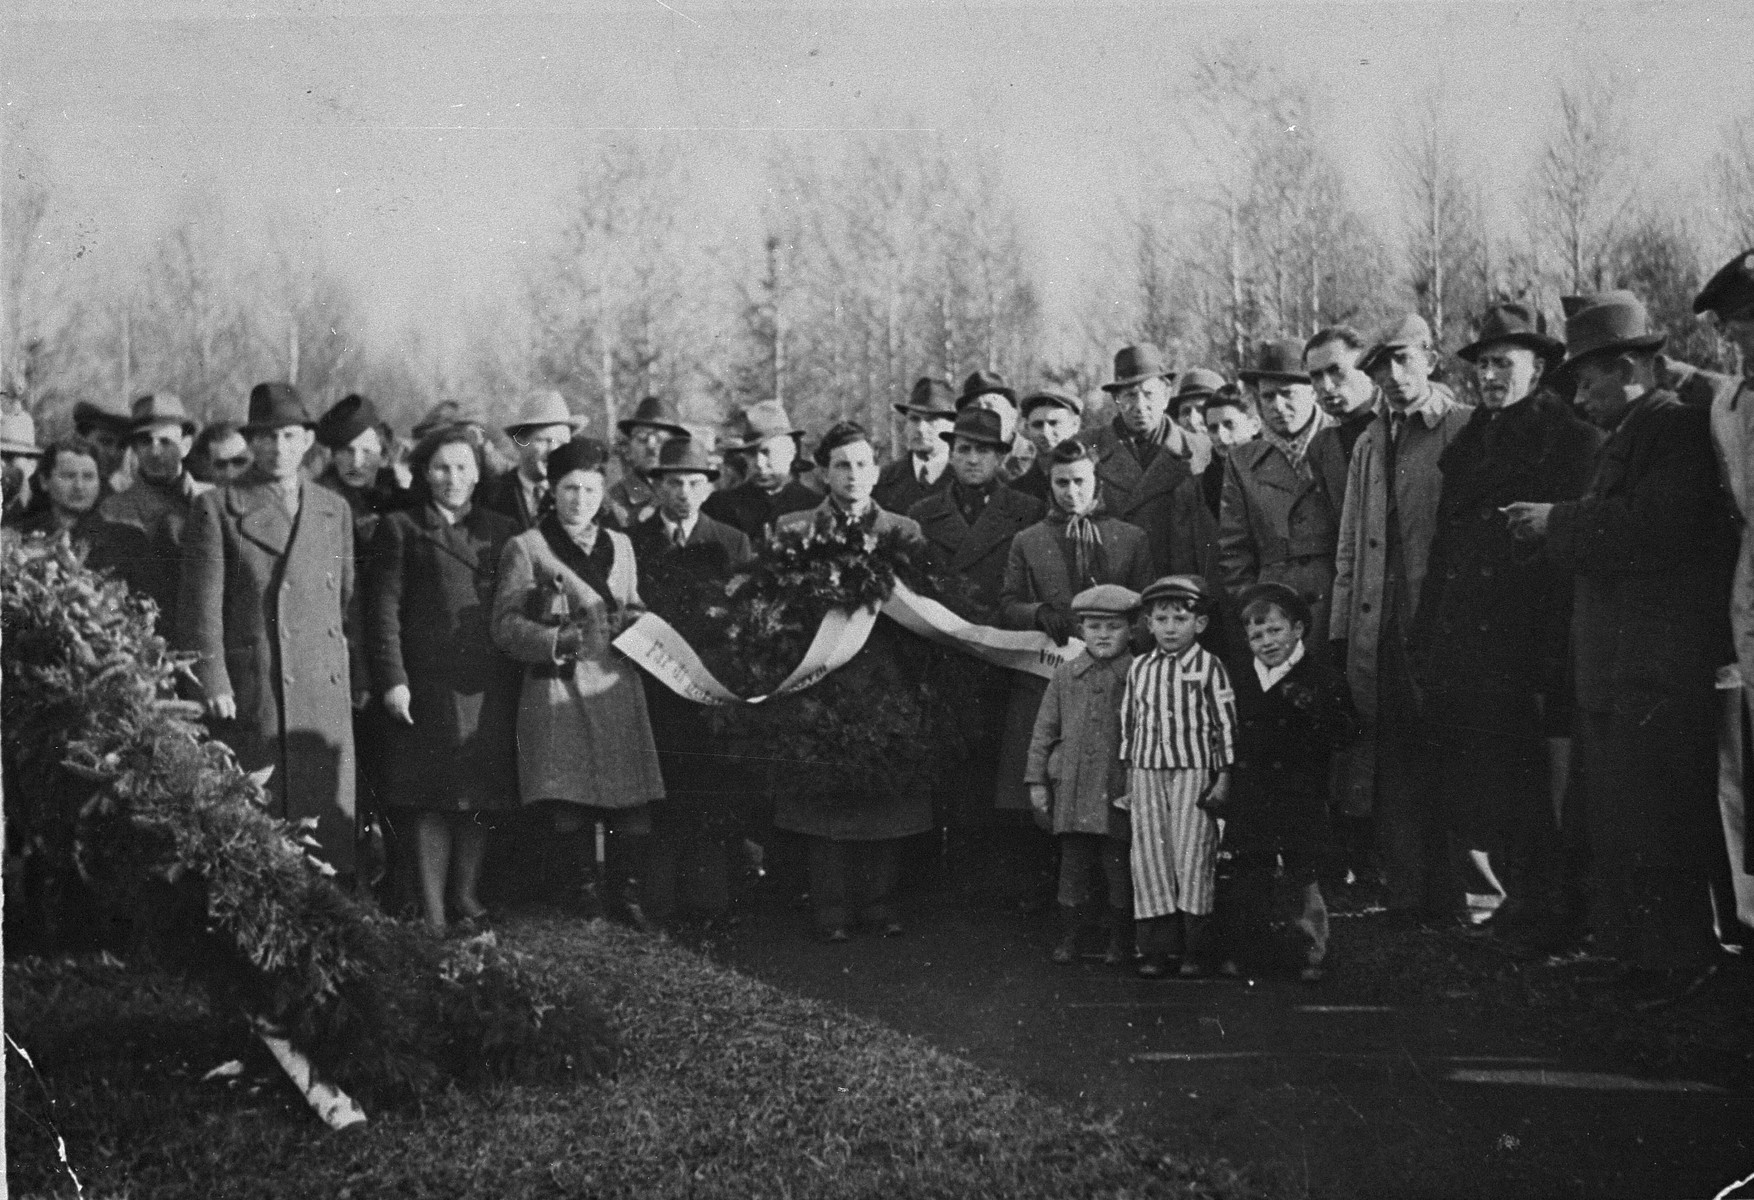 Jewish DPs attend a memorial service in the Buchenwald concentration camp.    The little boy in the concentration camp uniform may be Joseph Schleifstein.